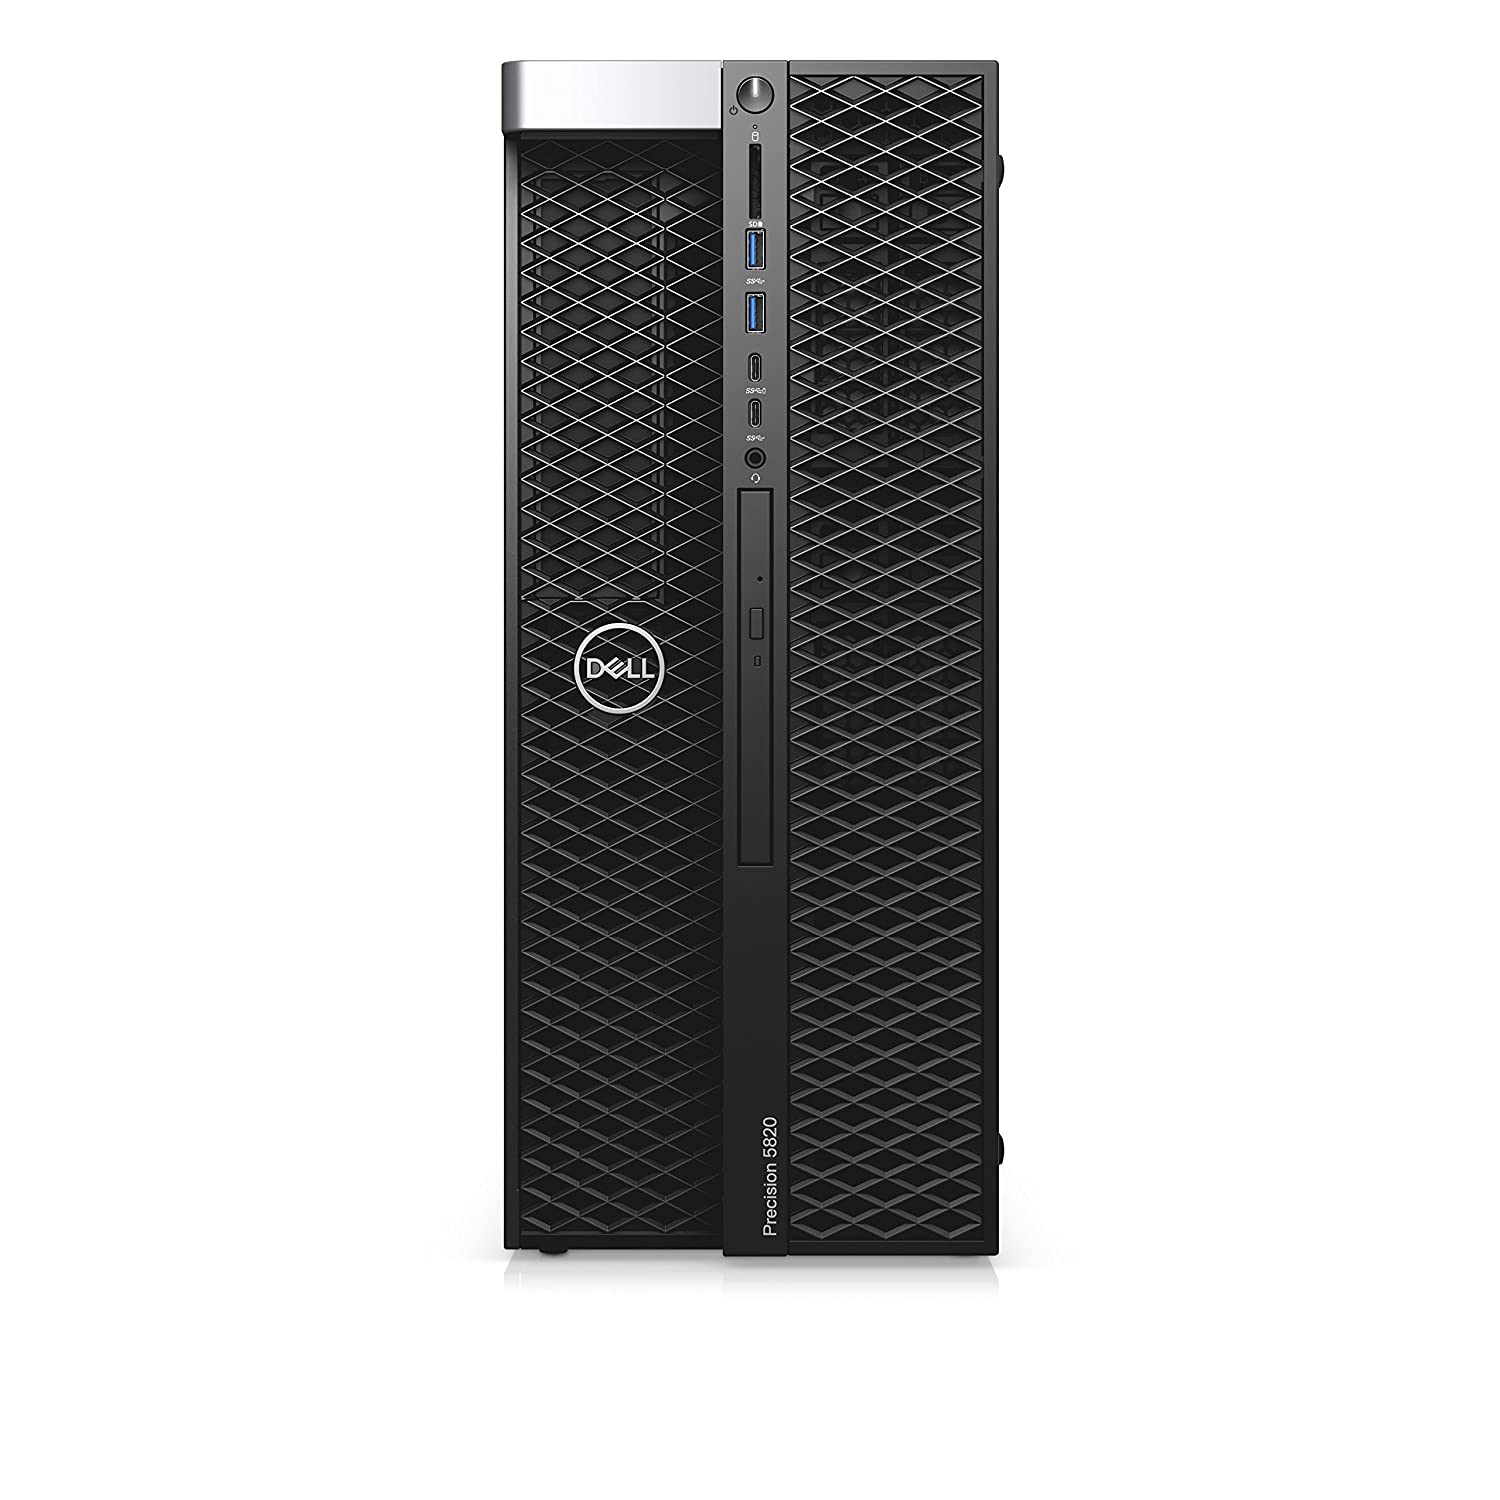 DELL Precision 5820 Intel® Xeon® W-2123 16 GB DDR4-SDRAM 512 GB SSD Negro Torre Puesto de Trabajo - Ordenador de sobremesa (3,60 GHz, Intel® Xeon®, 16 GB, 512 GB, DVD±RW, Windows 10 Pro)